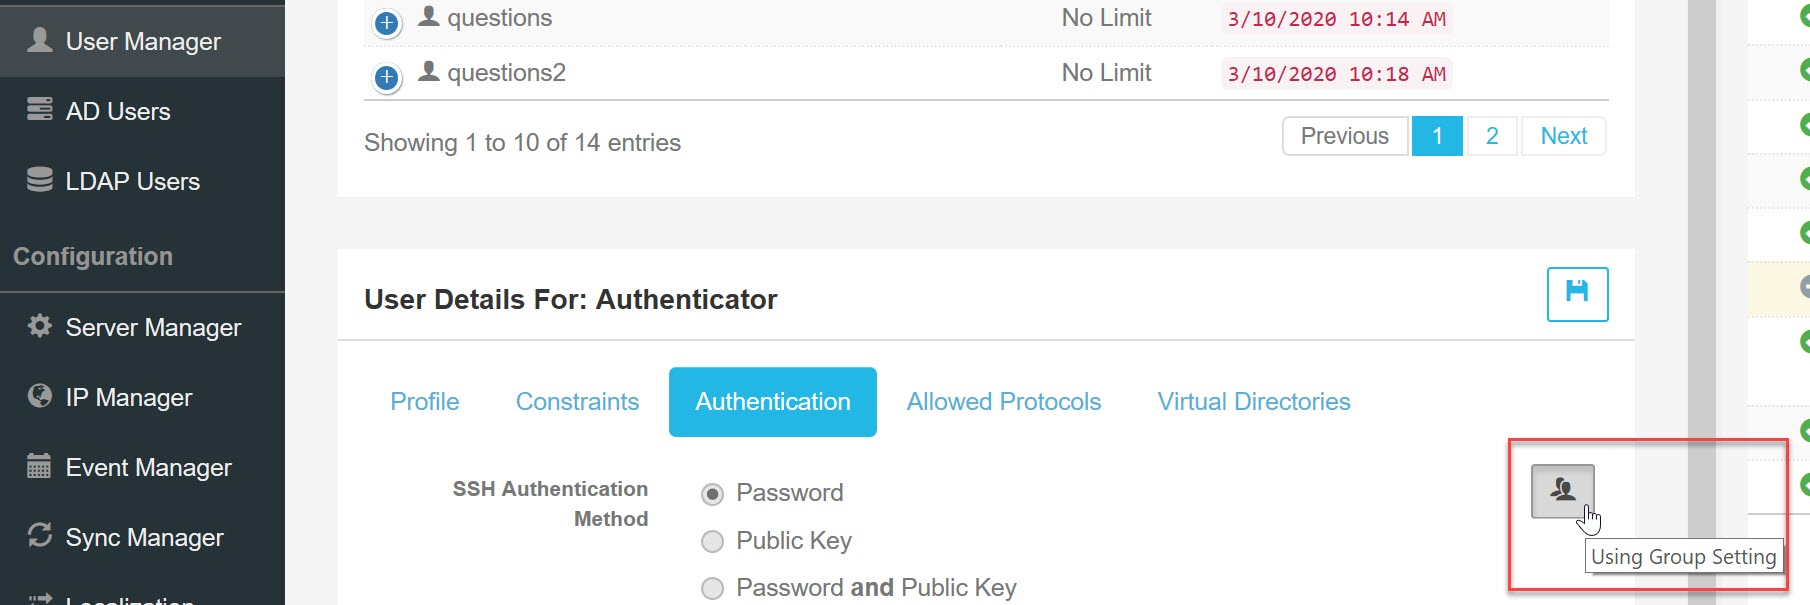 users_authentication_requirements_2fa_override.jpg